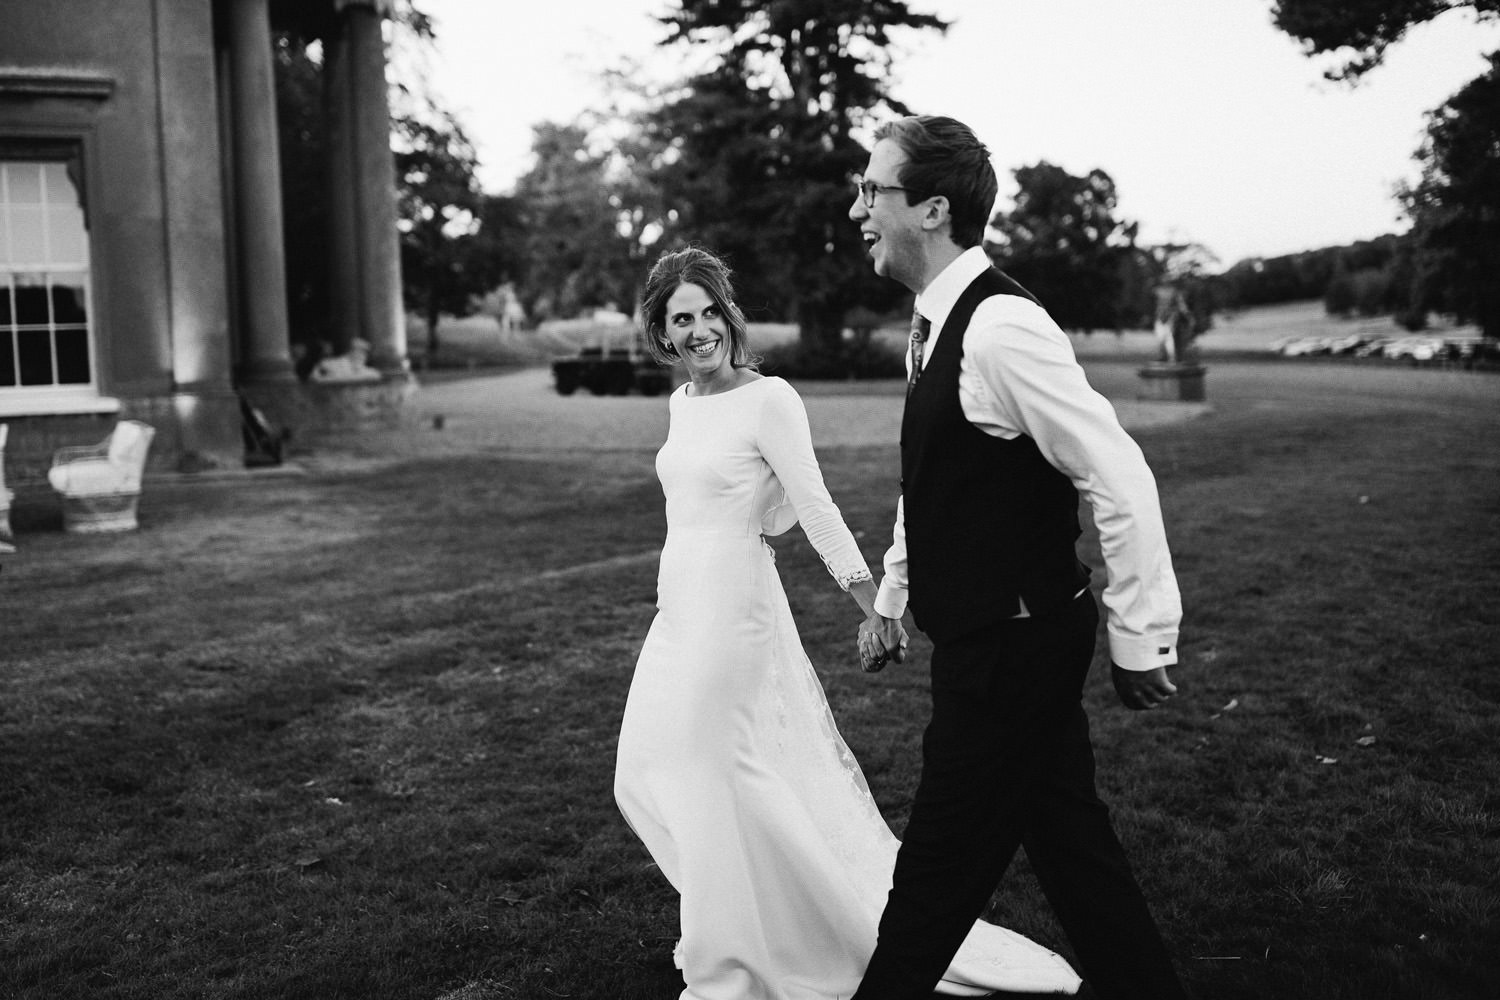 Bride wearing Rime Arodaky walks with groom in the evening light smiling